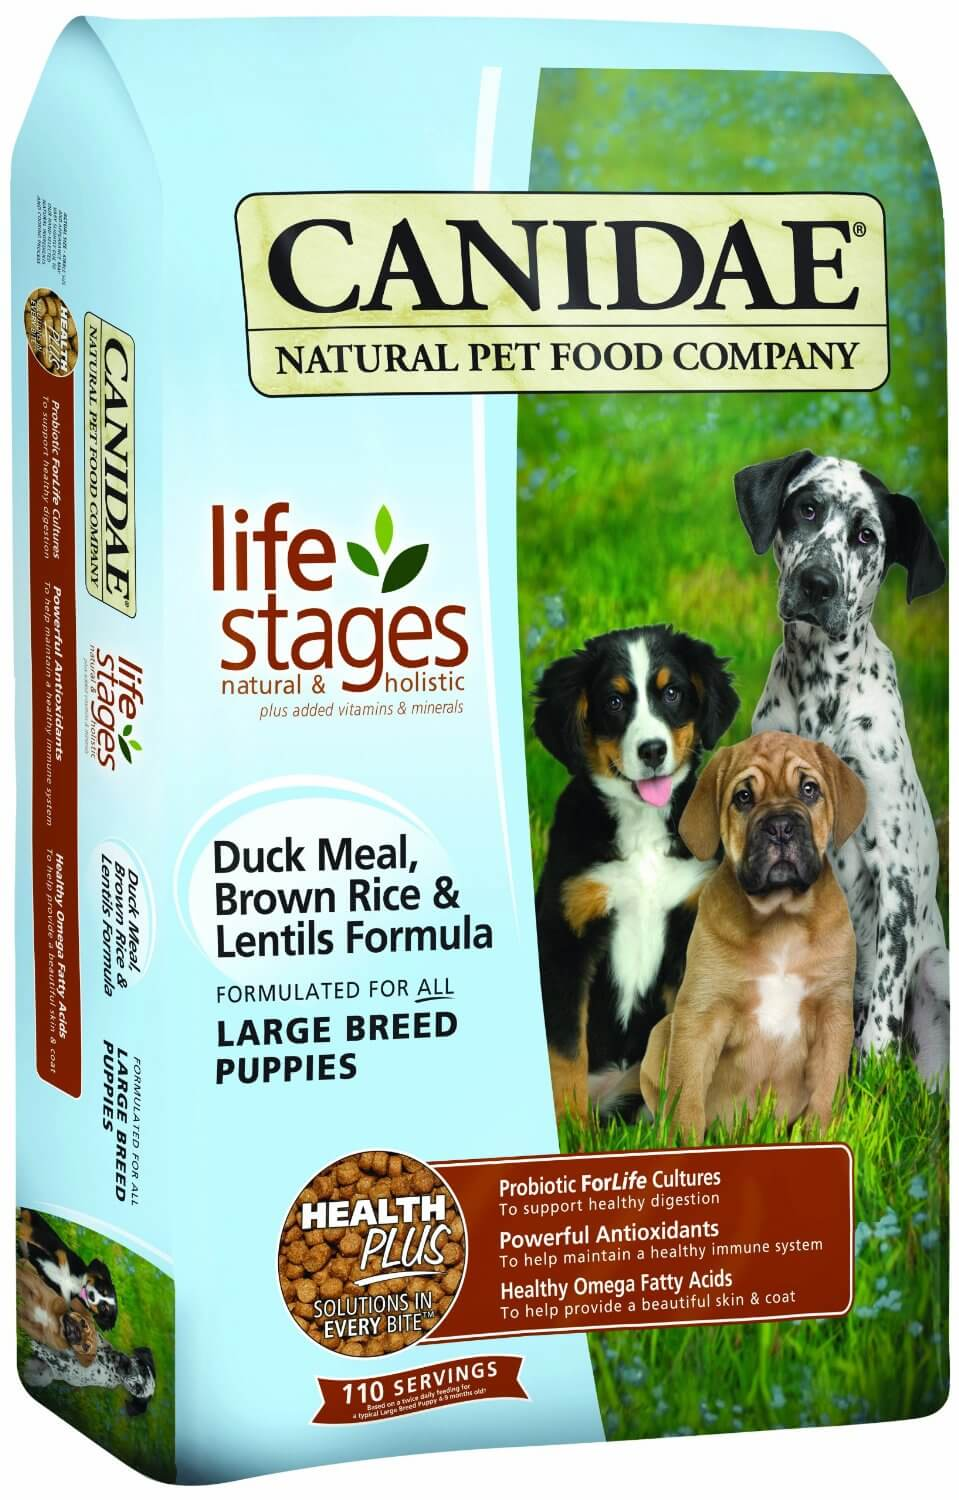 Product Review: CANIDAE All Life Stages Large Breed Puppy Food